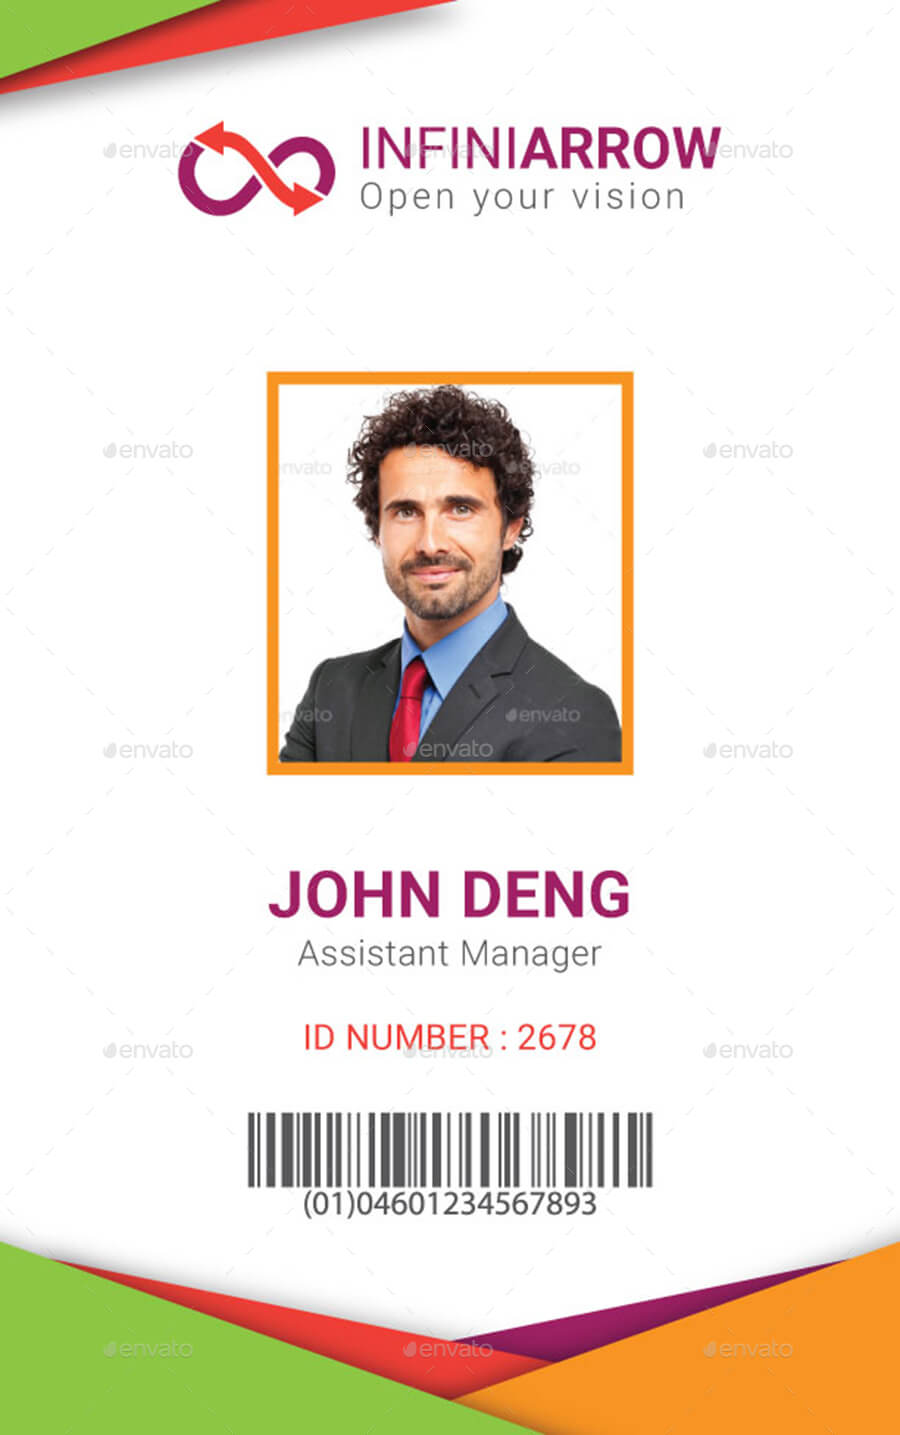 Id Card Format - Major.magdalene-Project intended for Id Card Template Word Free